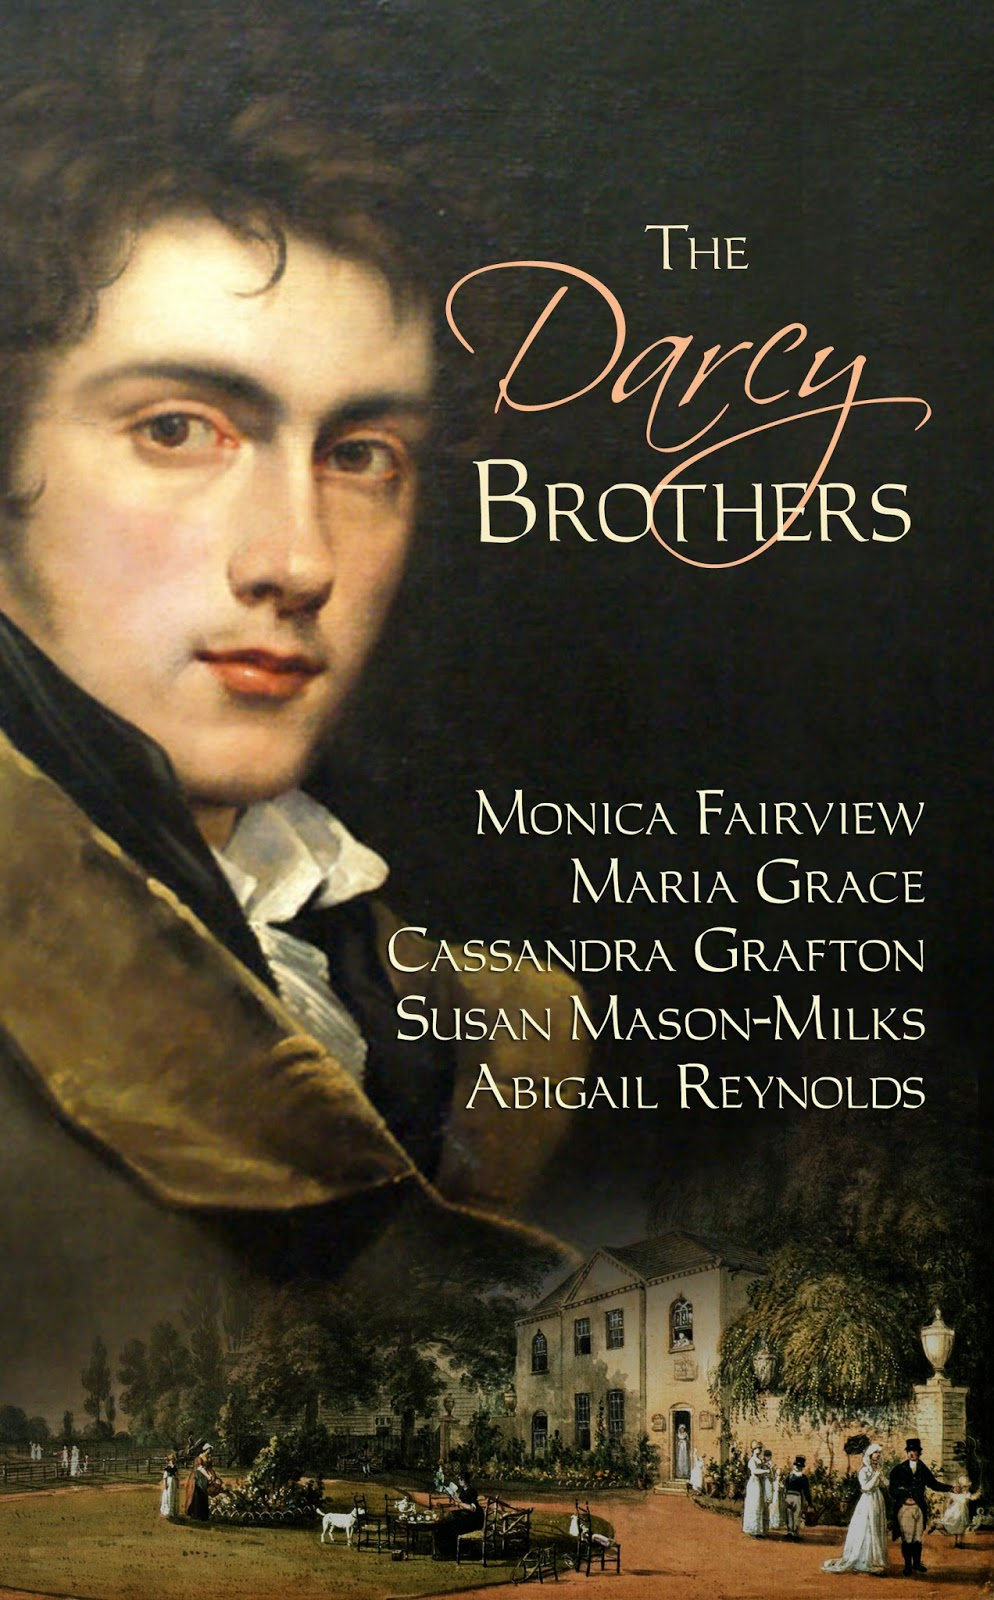 http://thedarcybrothers.com/buy-the-darcy-brothers/